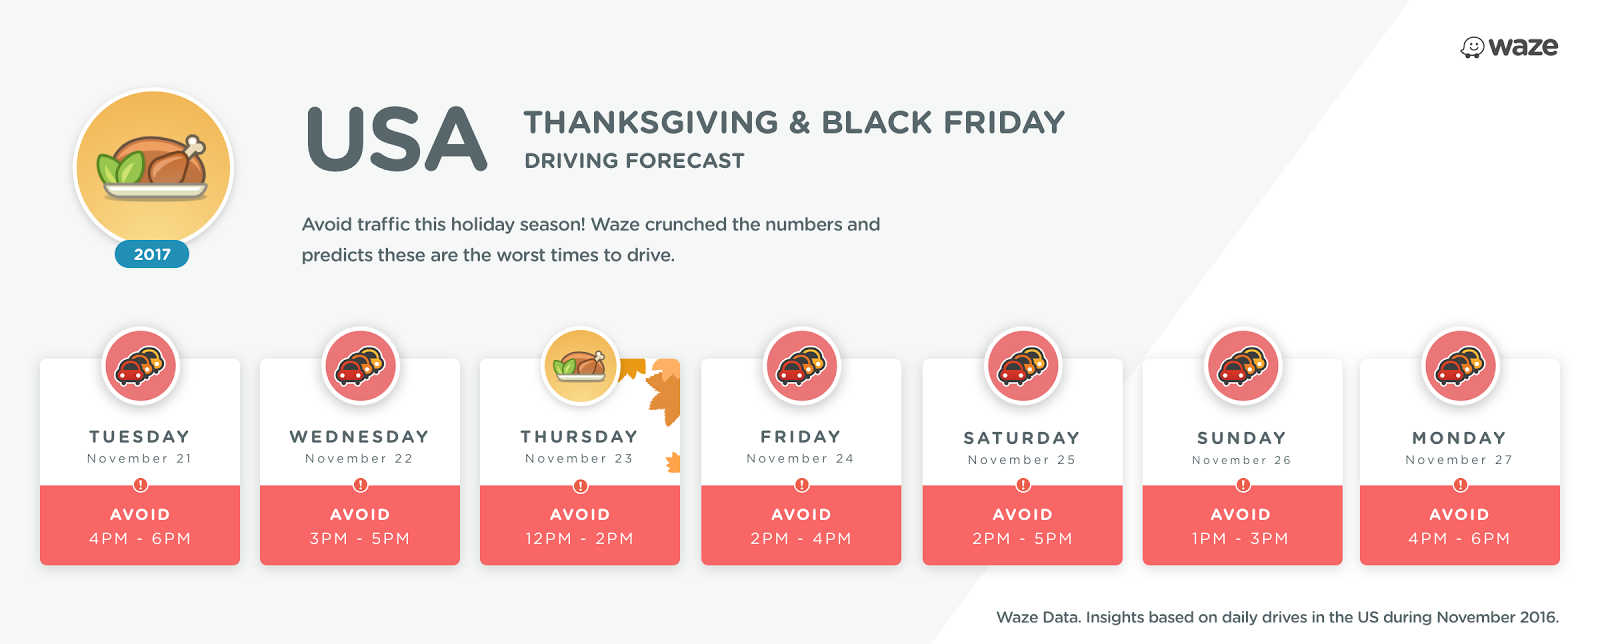 How to Avoid Thanksgiving Traffic With Google Maps and Waze